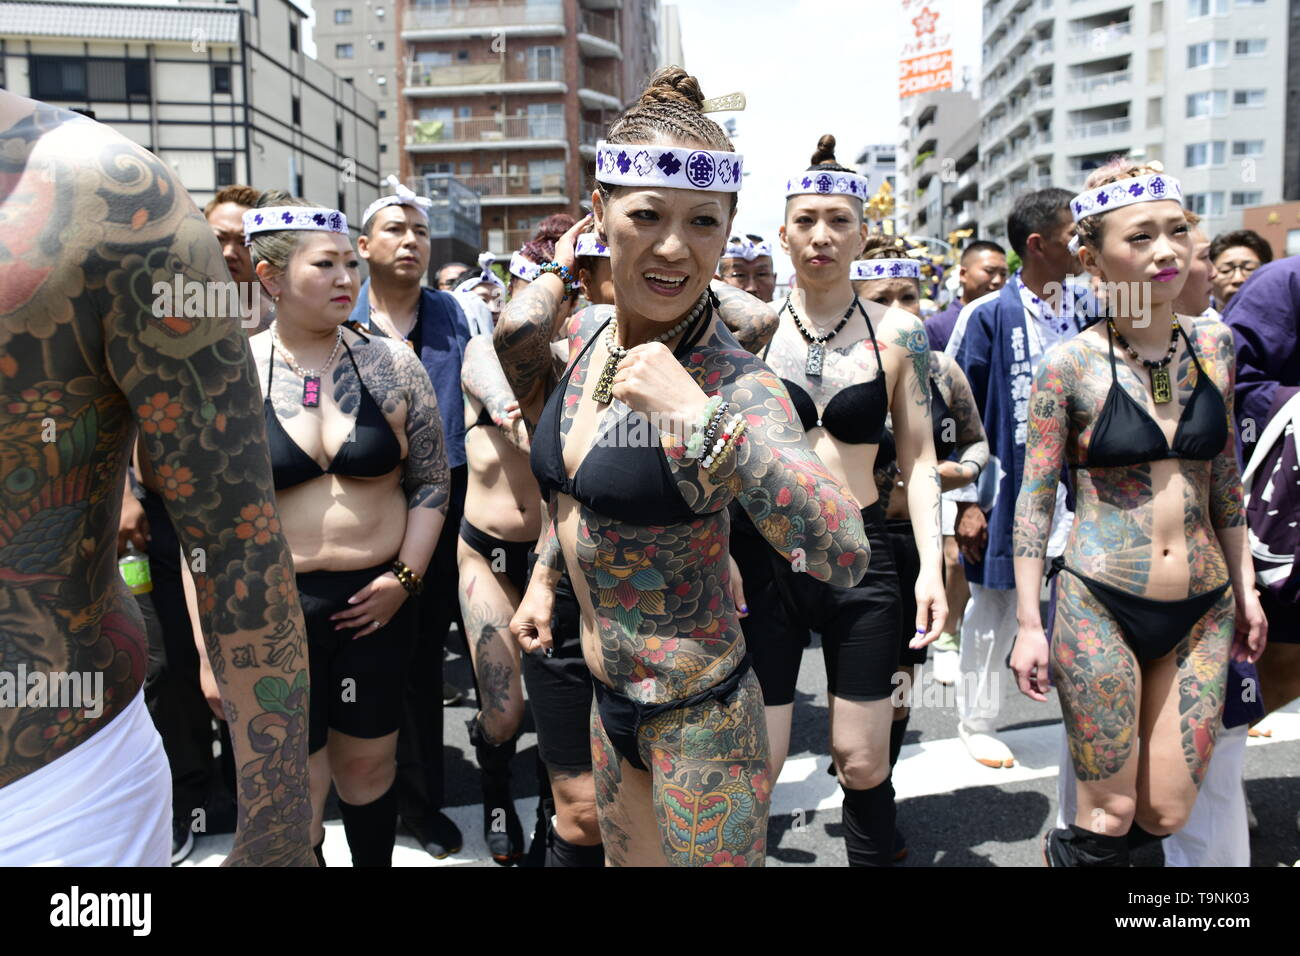 """TOKYO, JAPAN - MAY 18: Heavily tattooed Japanese men and women walk in the street of Asakusa during """"Sanja Matsuri"""" on May 18, 2019 in Tokyo, Japan. A boisterous traditional mikoshi (portable shrine) is carried in the streets of Asakusa to bring goodluck, blessings and prosperity to the area and its inhabitants. (Photo: Richard Atrero de Guzman/ AFLO) Stock Photo"""